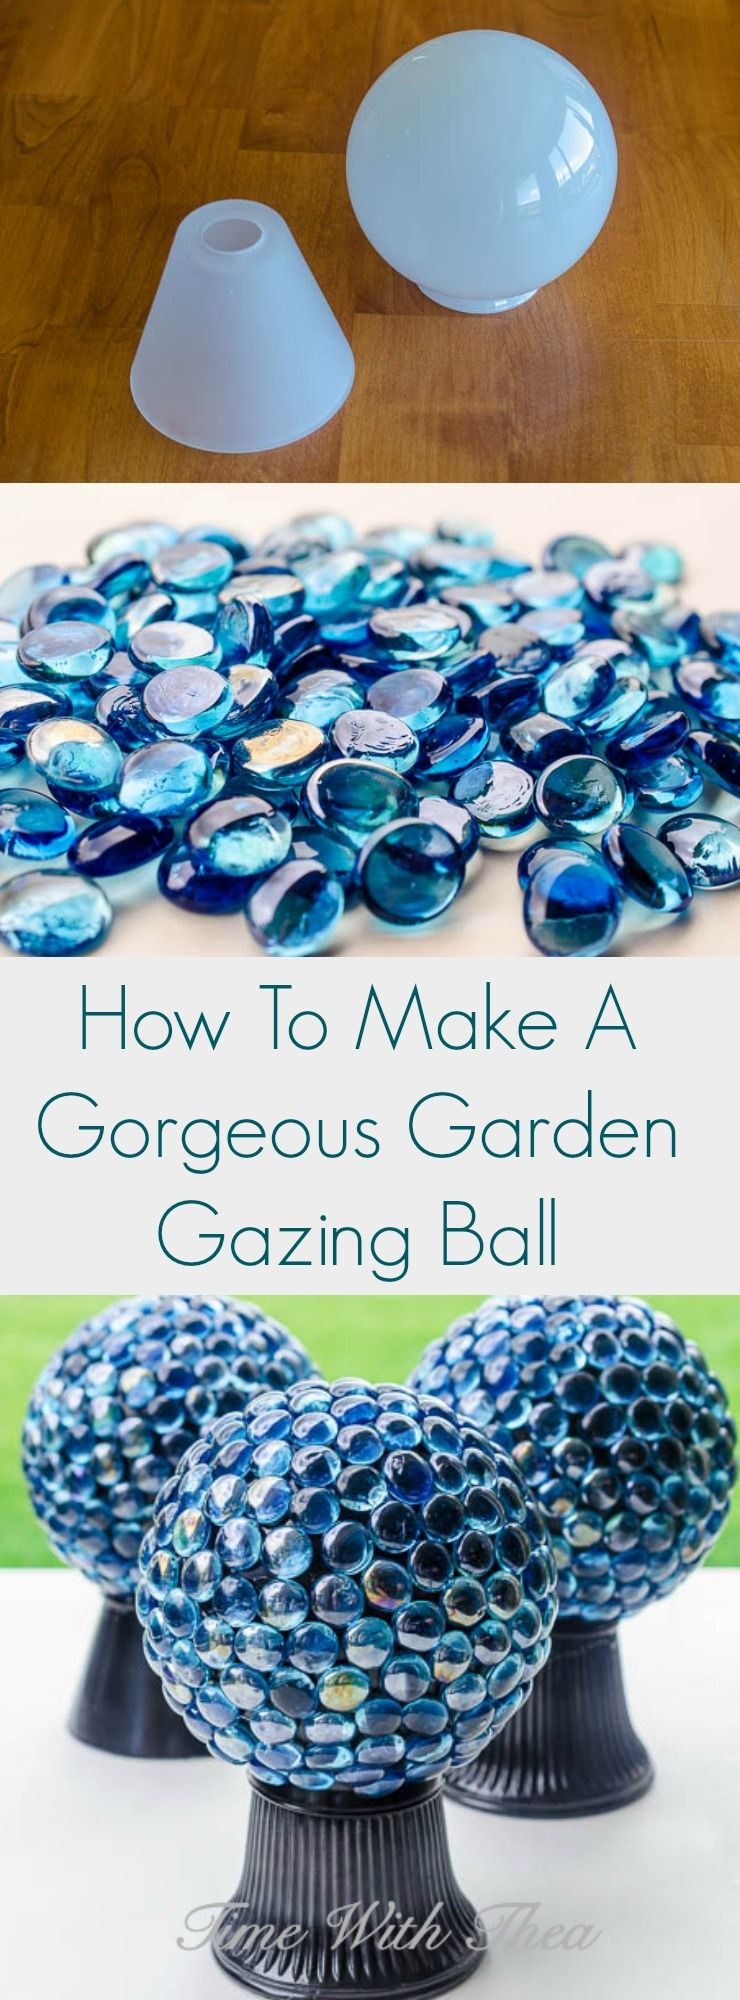 how to make a gorgeous garden gazing ball dollar stores gardens